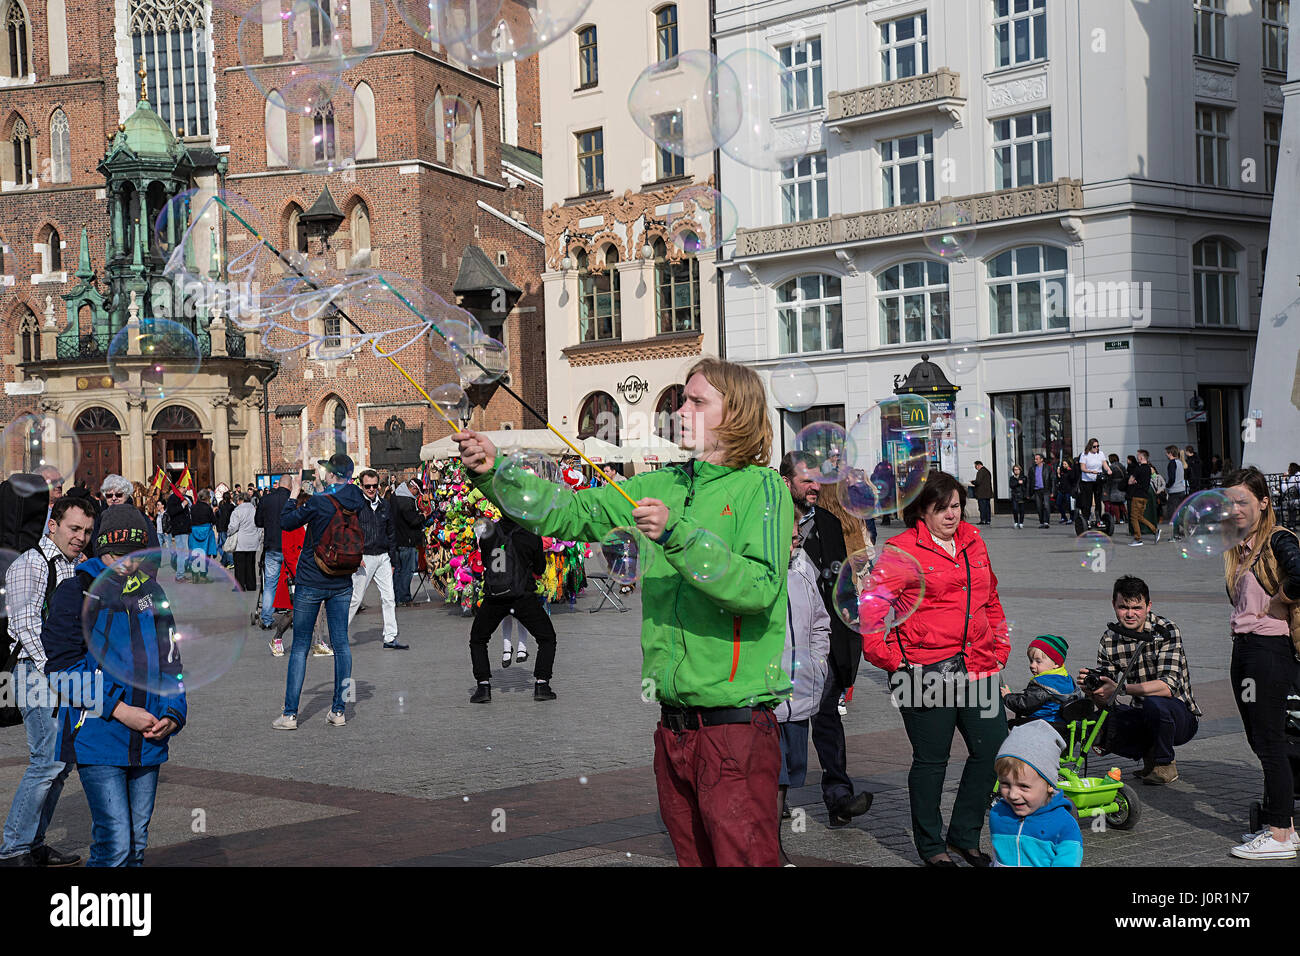 Street entertainer blowing bubbles for children - Stock Image